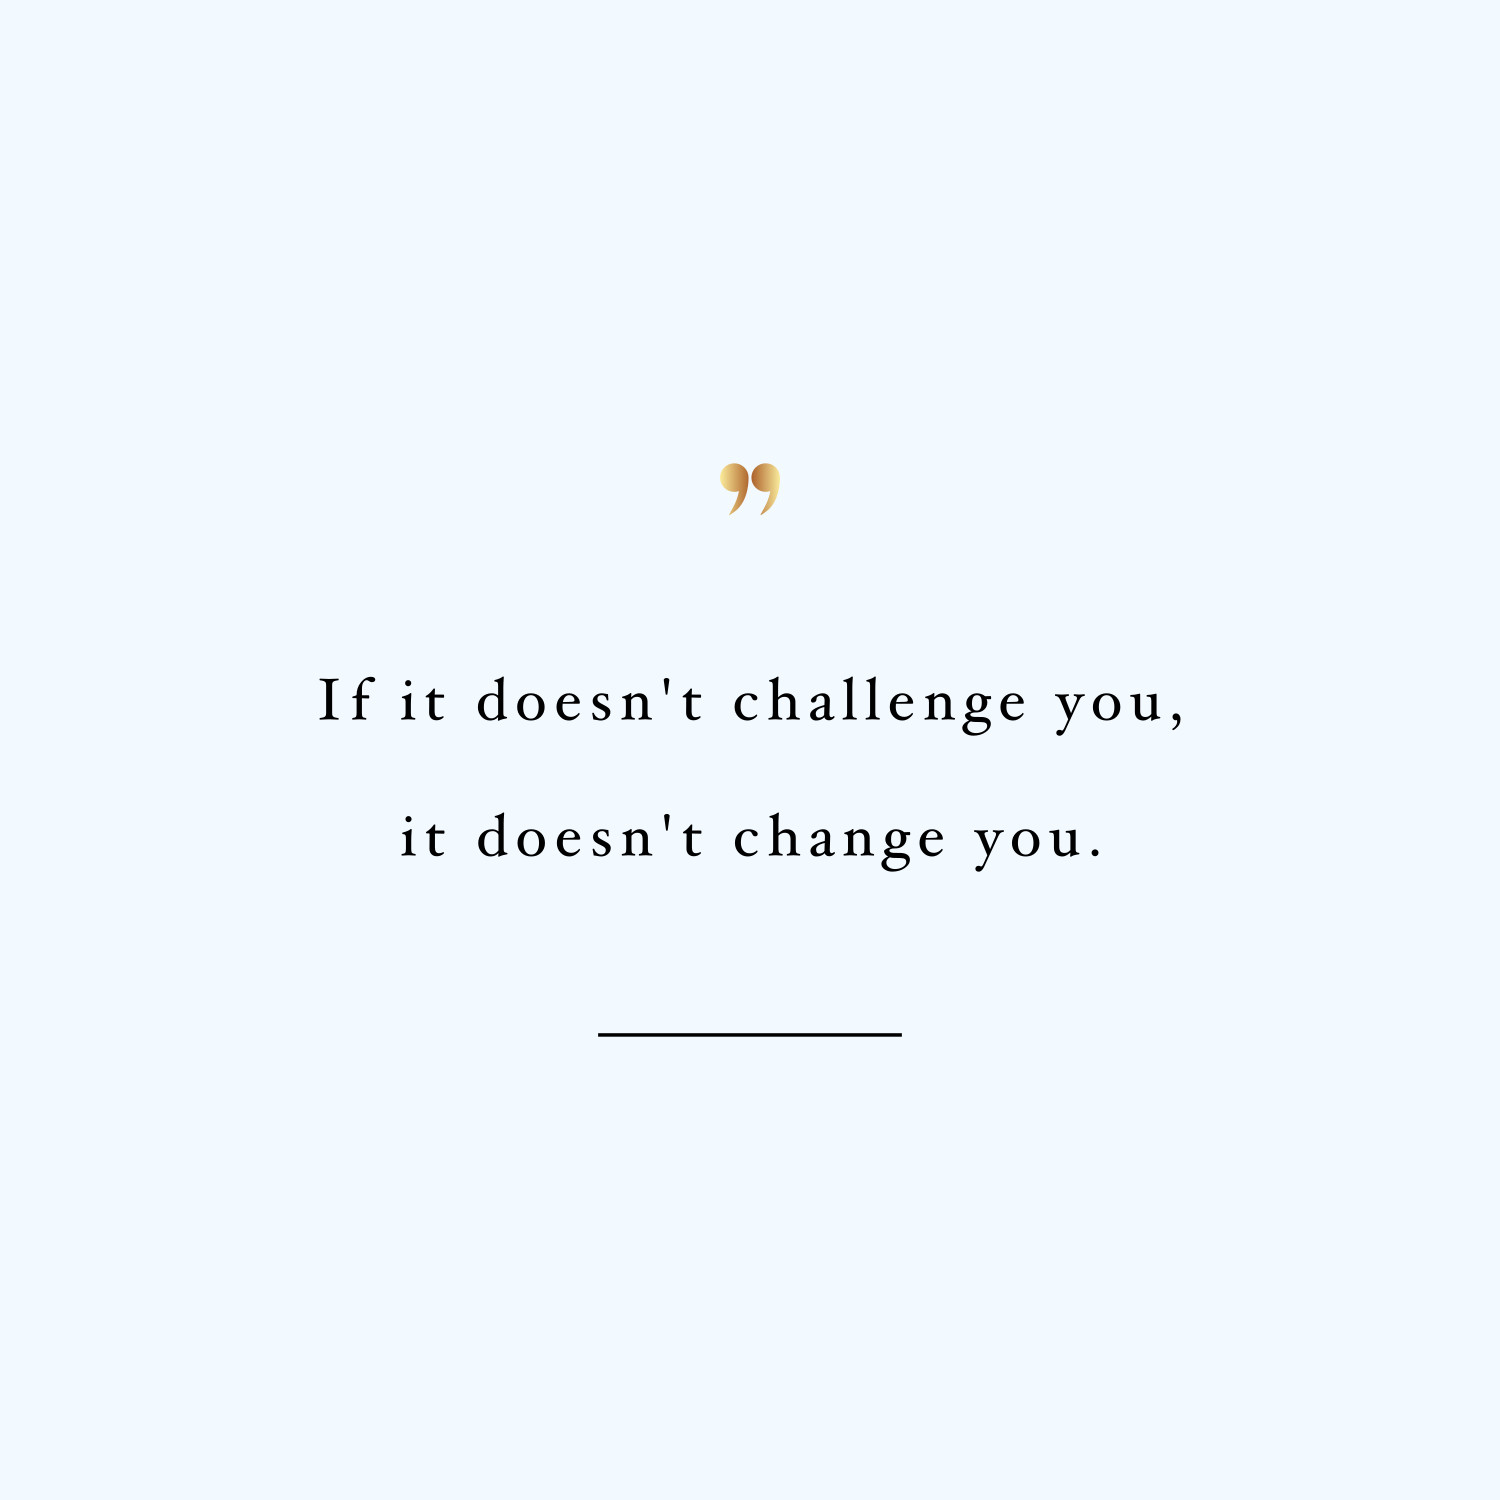 Challenge yourself! Browse our collection of motivational fitness quotes and get instant training and workout inspiration. Stay focused and get fit, healthy and happy! https://www.spotebi.com/workout-motivation/workout-inspiration-challenge-yourself/